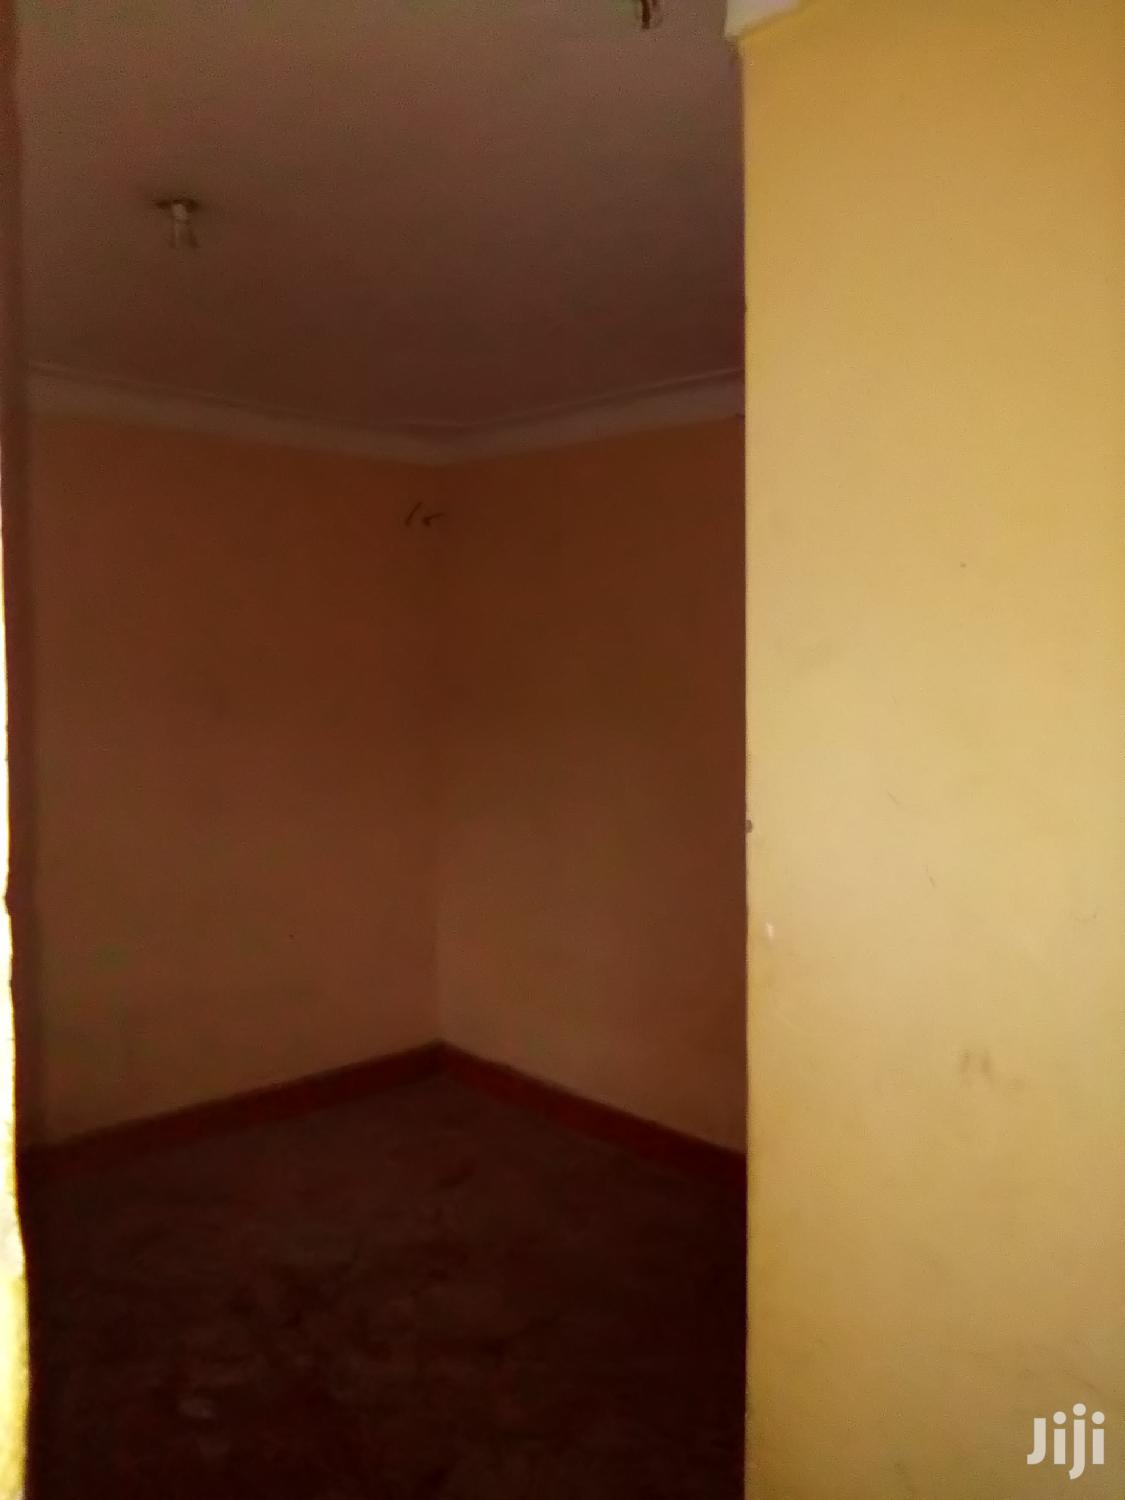 Single Room House In Kitintale For Rent | Houses & Apartments For Rent for sale in Kampala, Central Region, Uganda